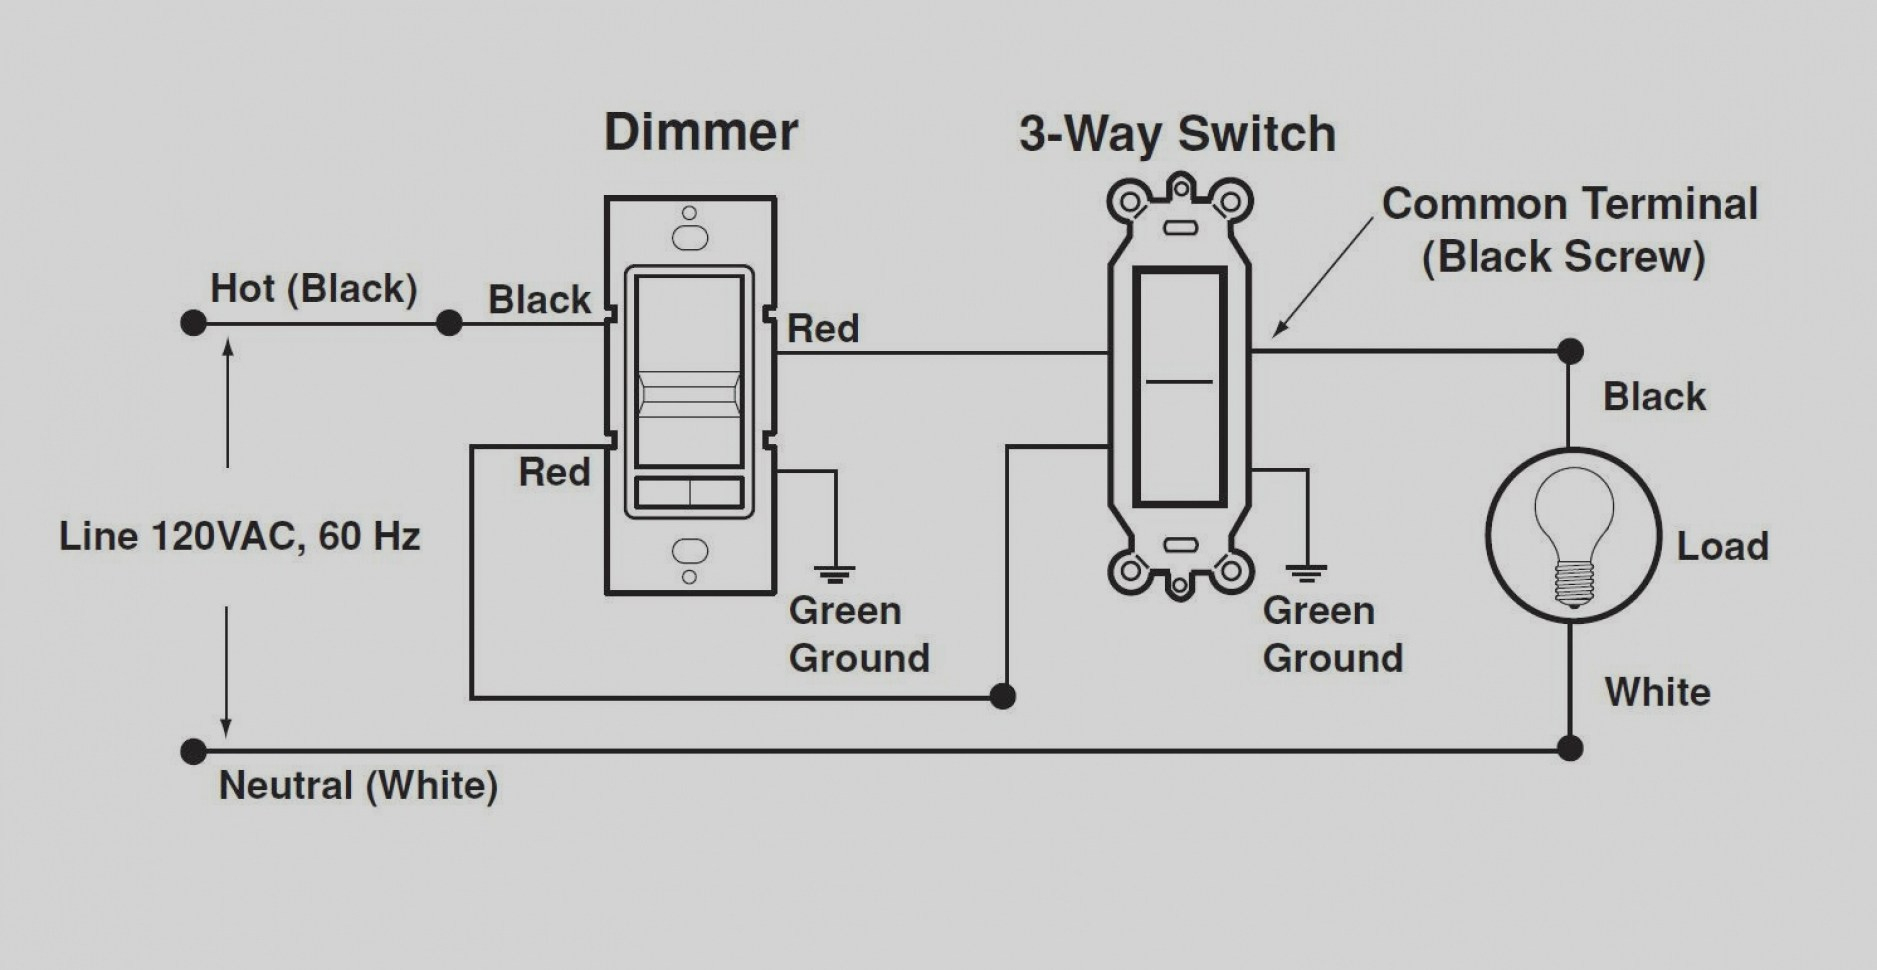 pass amp seymour wiring diagrams wiring diagram pass \u0026 seymour Wiring Gibson 3 Humbucker Pick Up with 2 Volume 2 Tone pass amp seymour wiring diagrams wiring diagram \u2013 pass \u0026 seymour switches wiring diagram